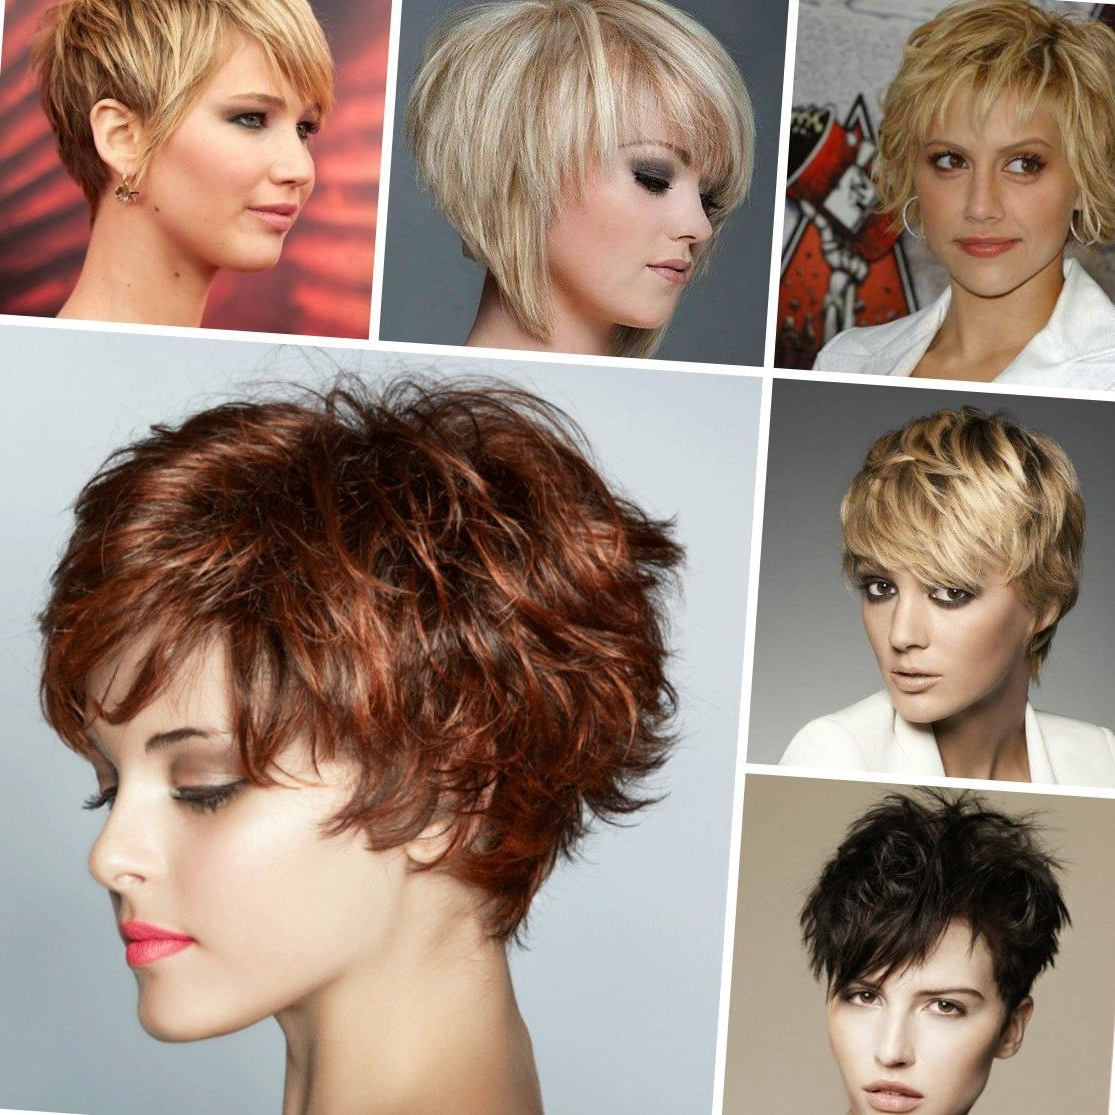 20 Short Sassy Haircuts Short Hairstyles 2017 2018 Most Short Intended For Messy Sassy Long Pixie Haircuts (View 7 of 20)